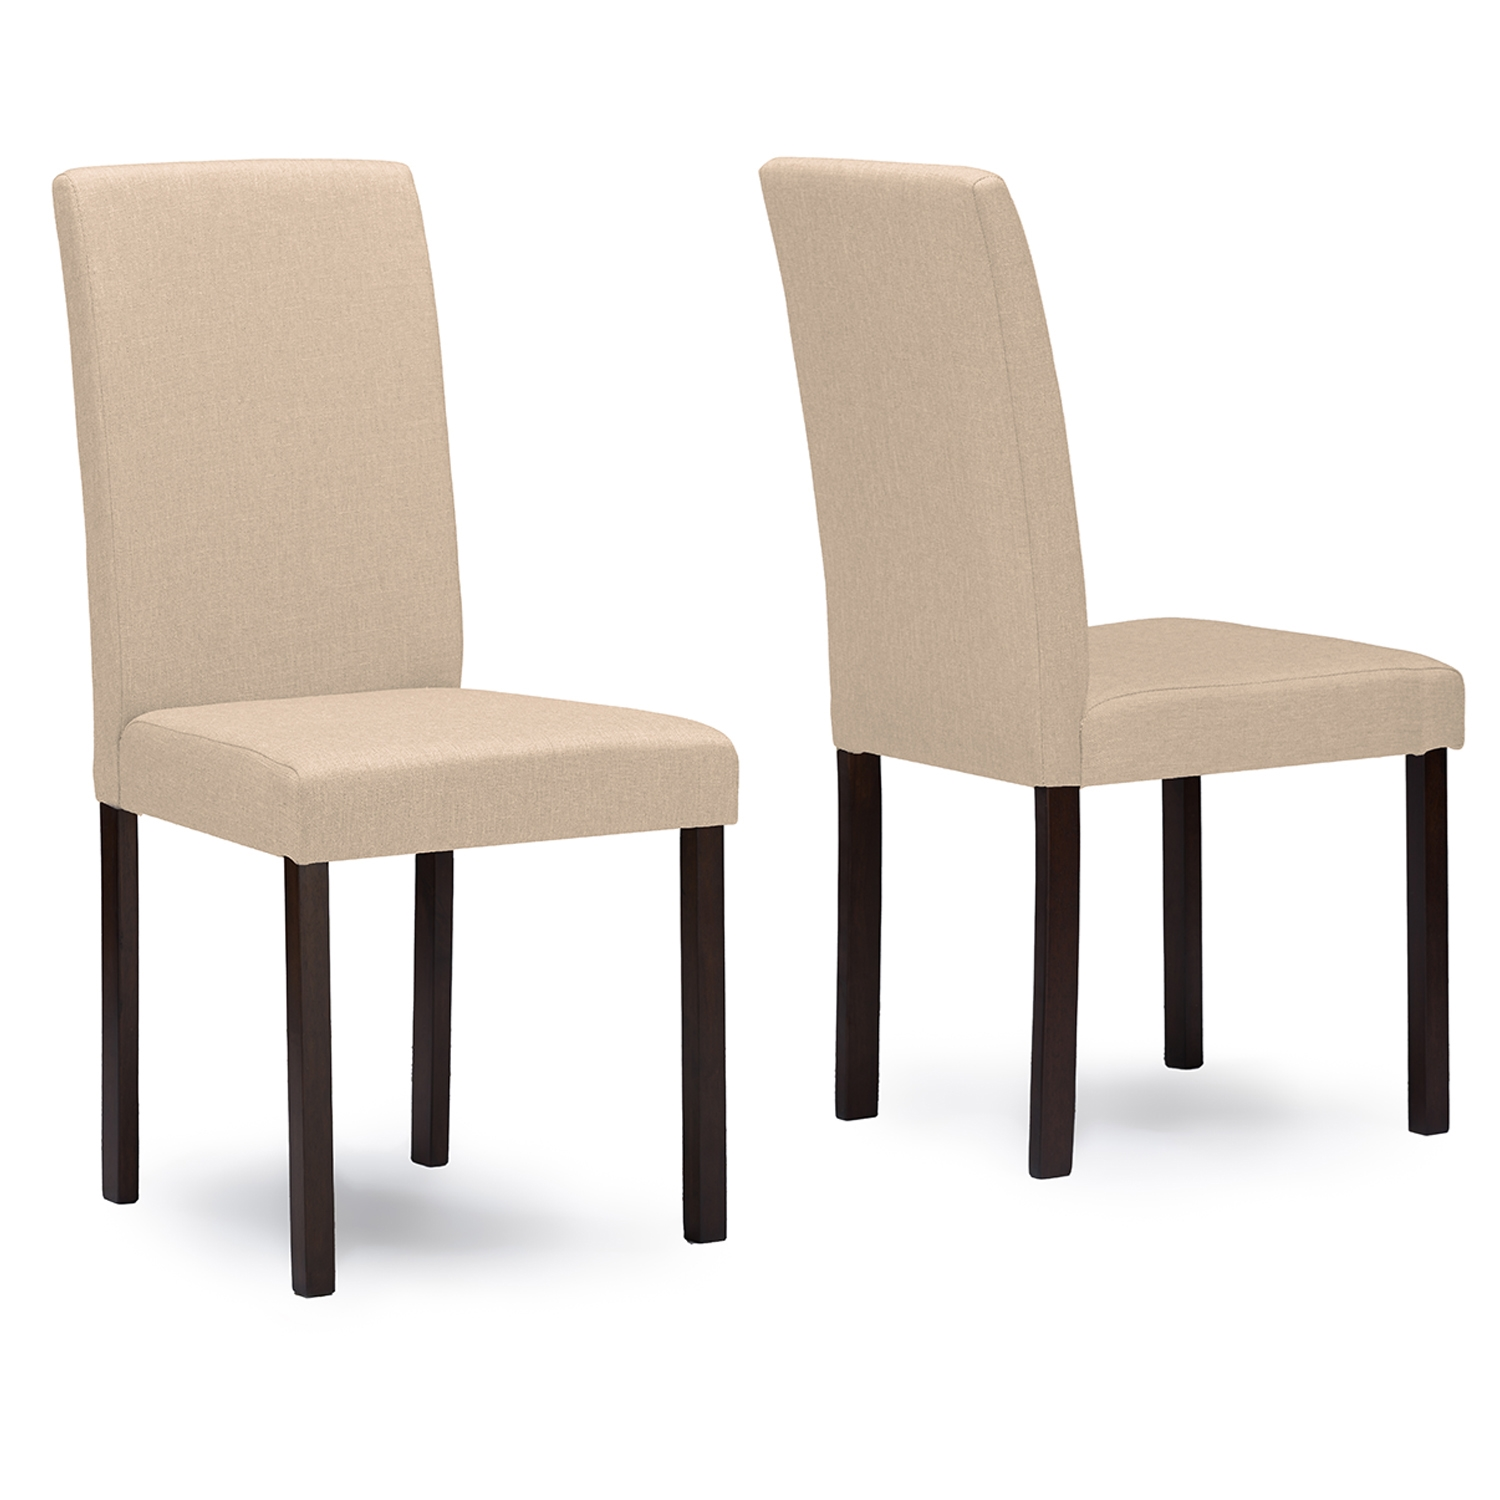 baxton studio andrew espresso wood beige fabric dining chair baxton studio restaurant furniture hotel